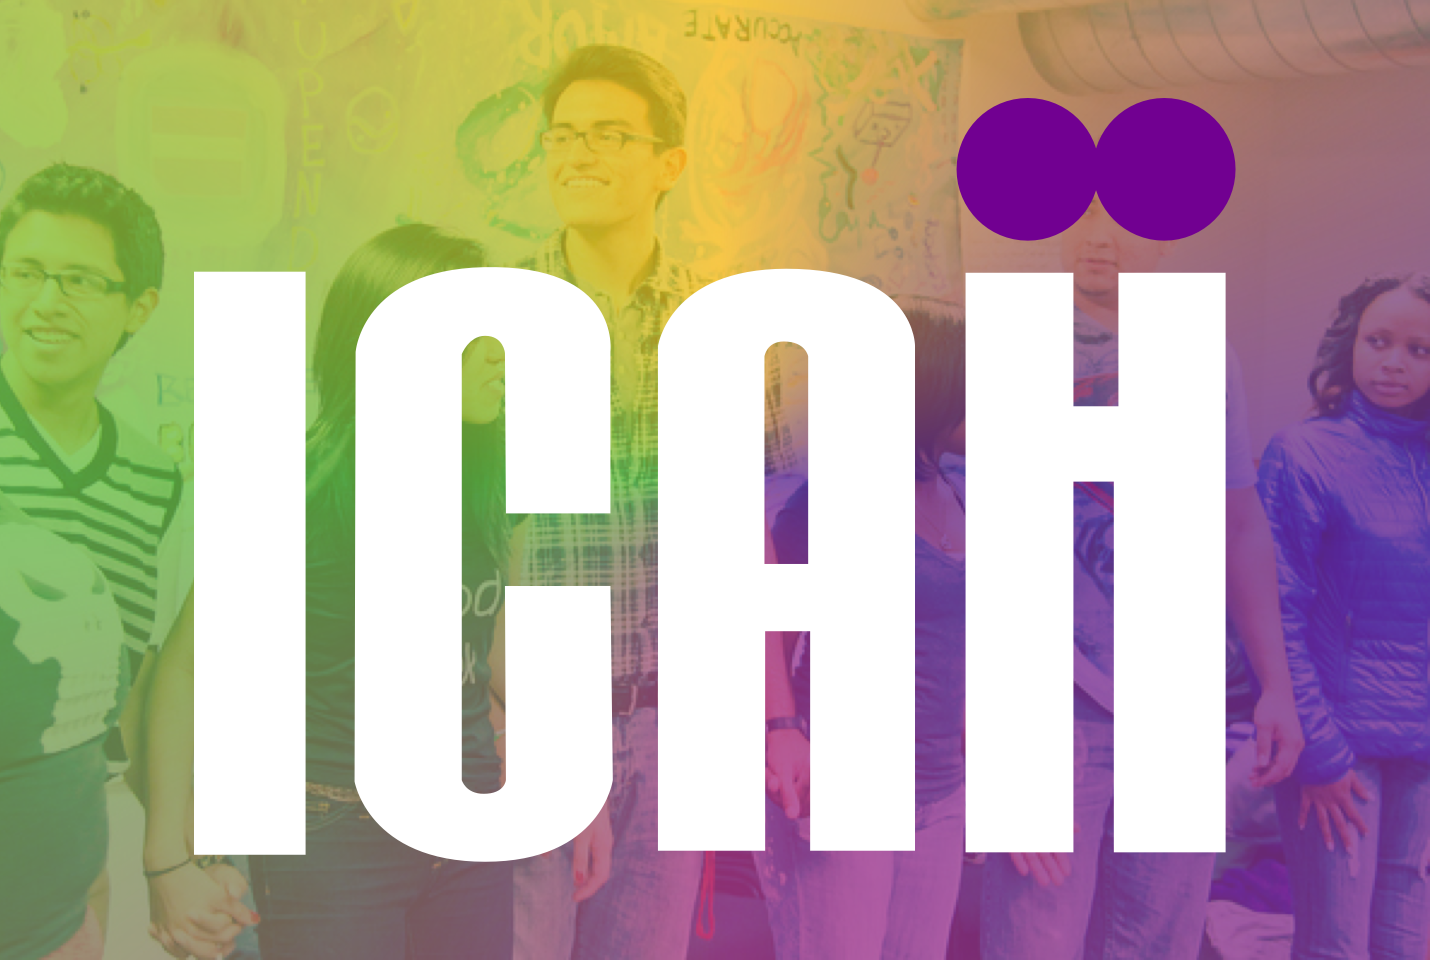 For ICAH's 40th anniversary, I directed a branding refresh, including logos, posters, and an email template.